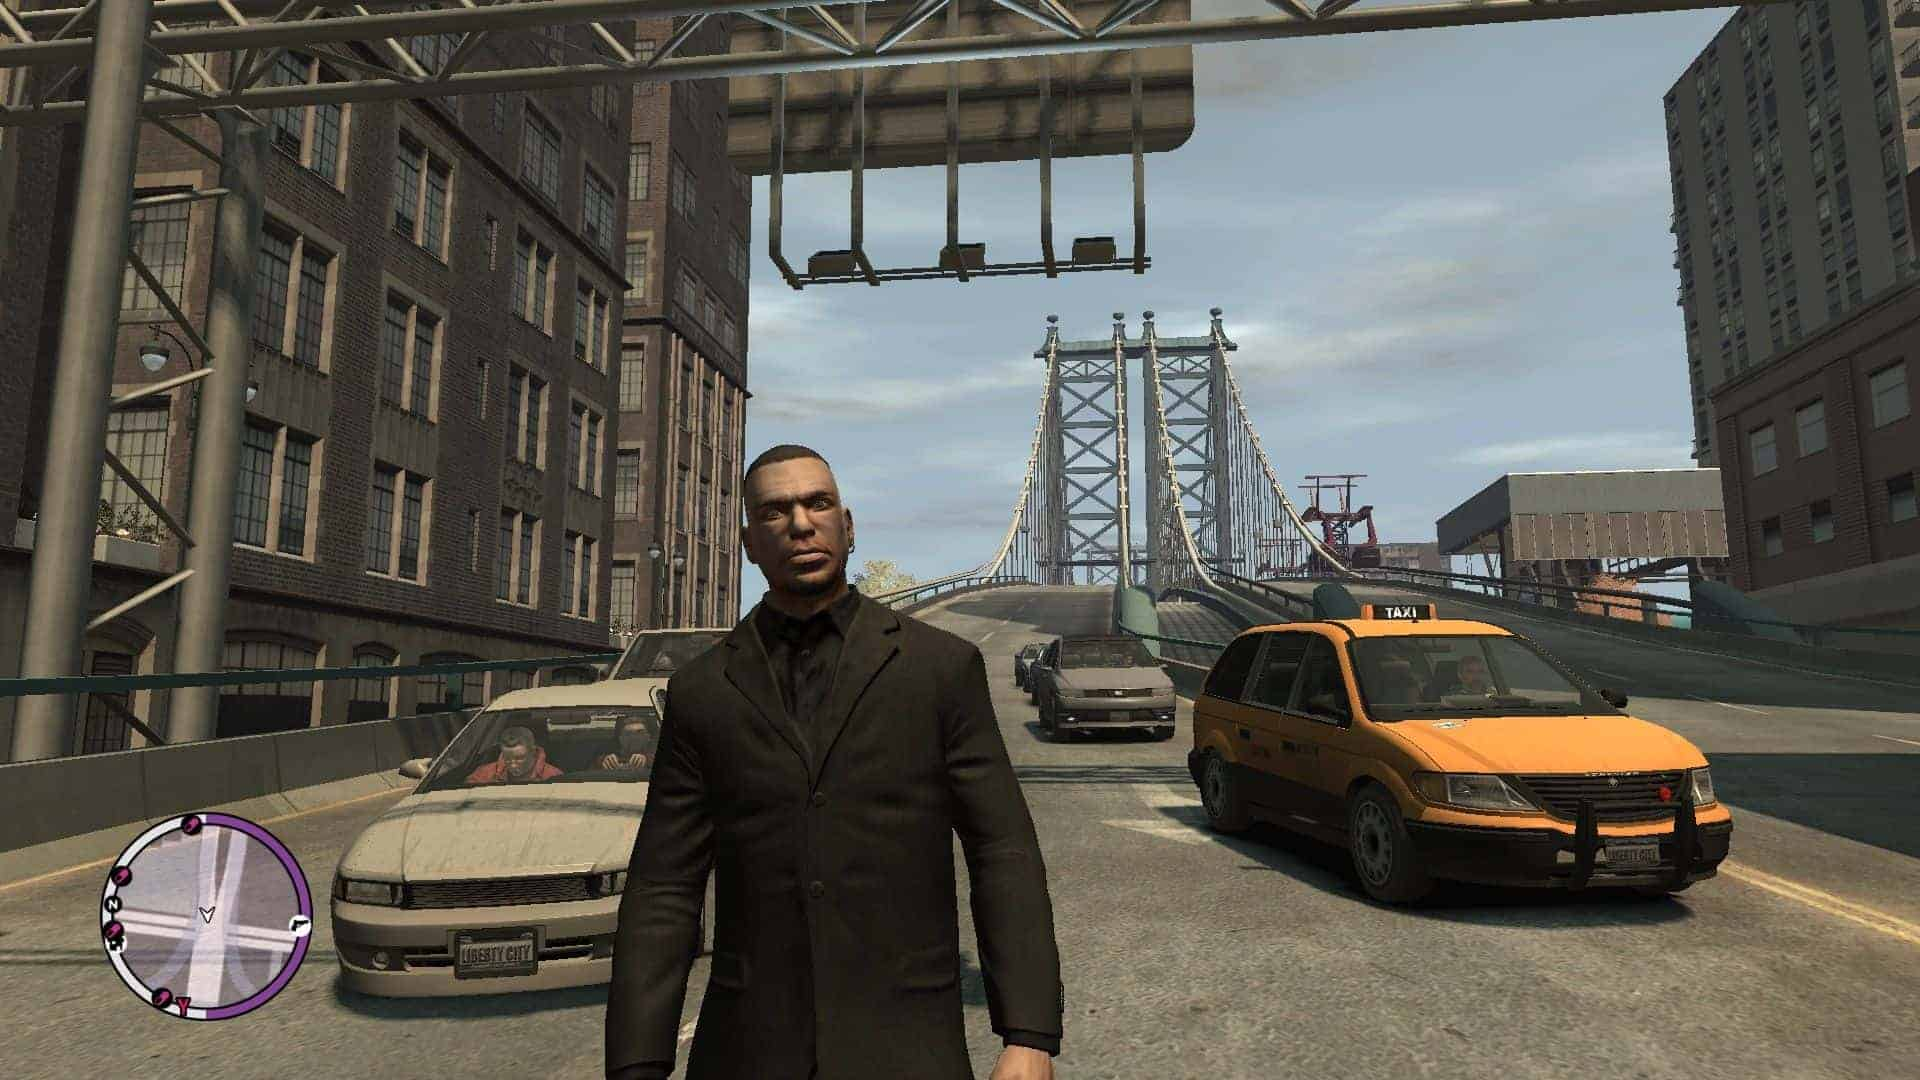 gta episodes from liberty city download utorrent